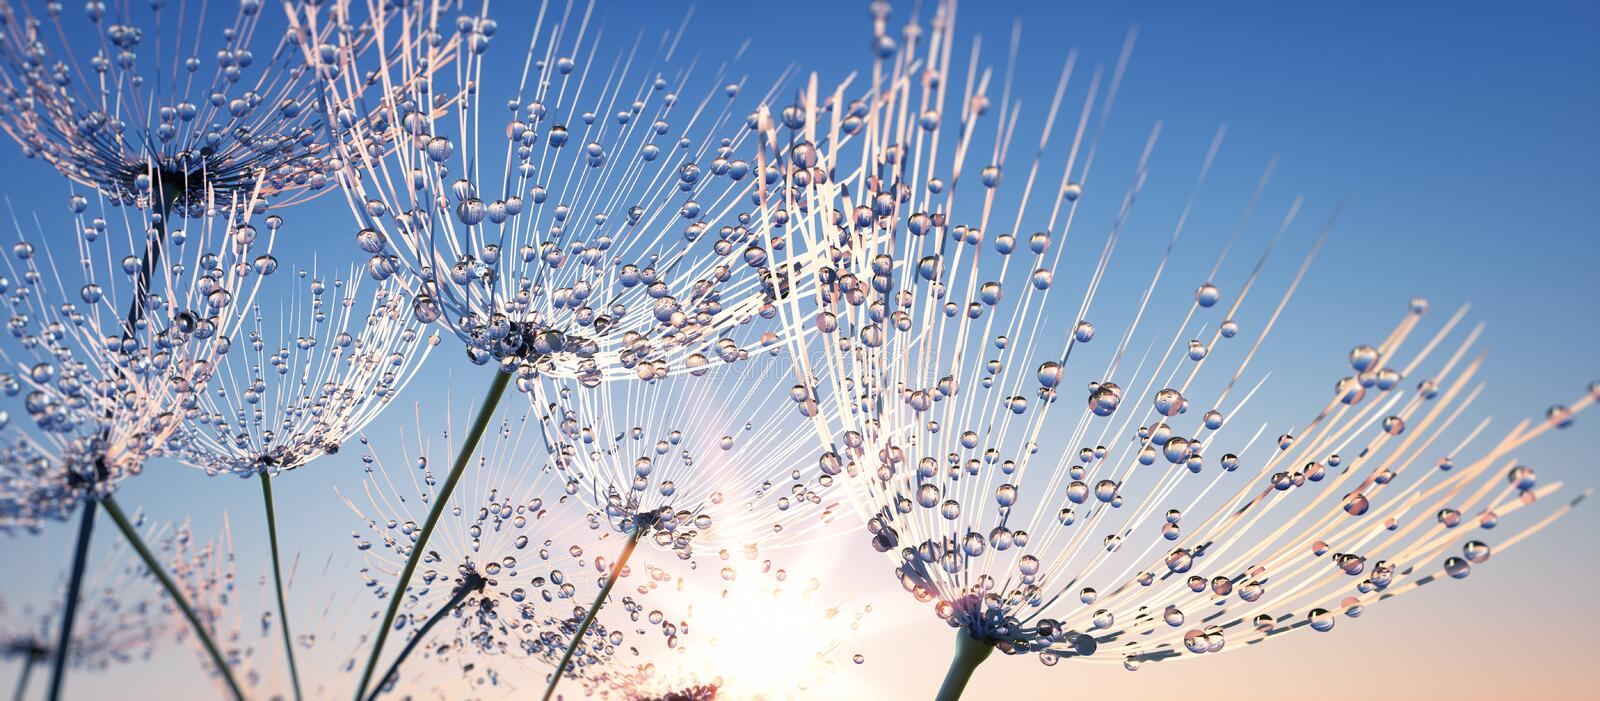 Some Dandelion seeds with dew drops. Some dandelion seed with dew drops in the air in the evenings against a blue sky royalty free stock photo